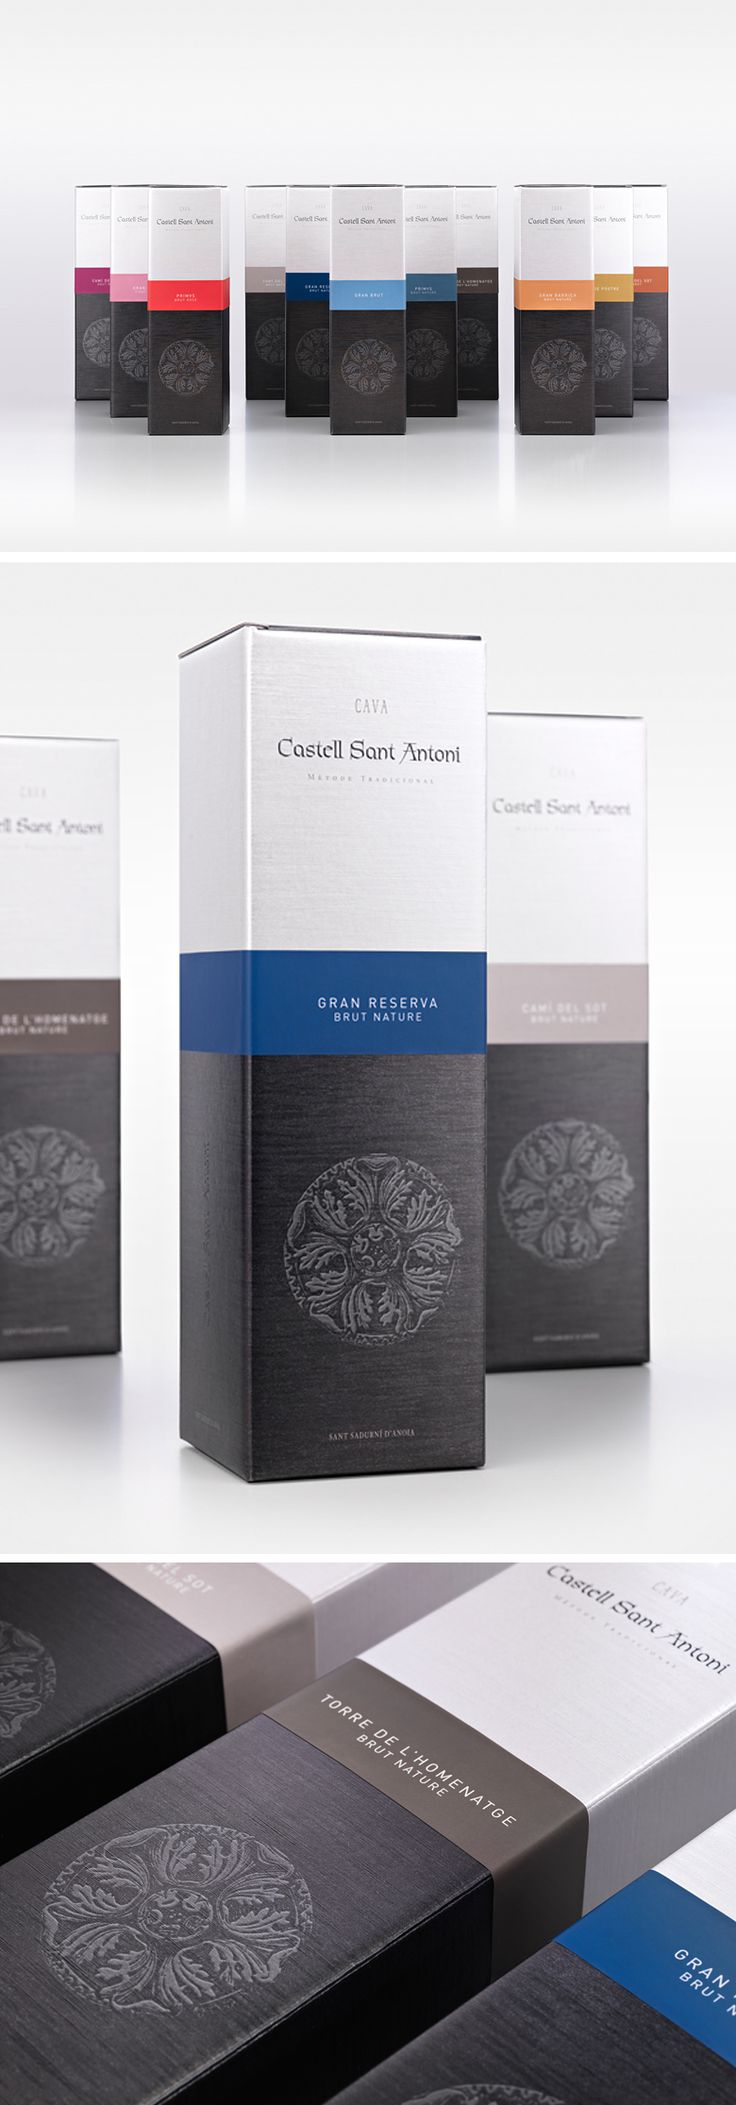 "CASTELL SANT ANTONI Cases for ""Castell Sant Antoni's"" cava range. We worked on the basis of a common, custom box with color bands that remind us of the label of each product. Finish observations: printing in black and white and embossing, highlighted on Fedrigoni Jade Silk paper. www.pagadisseny.com"